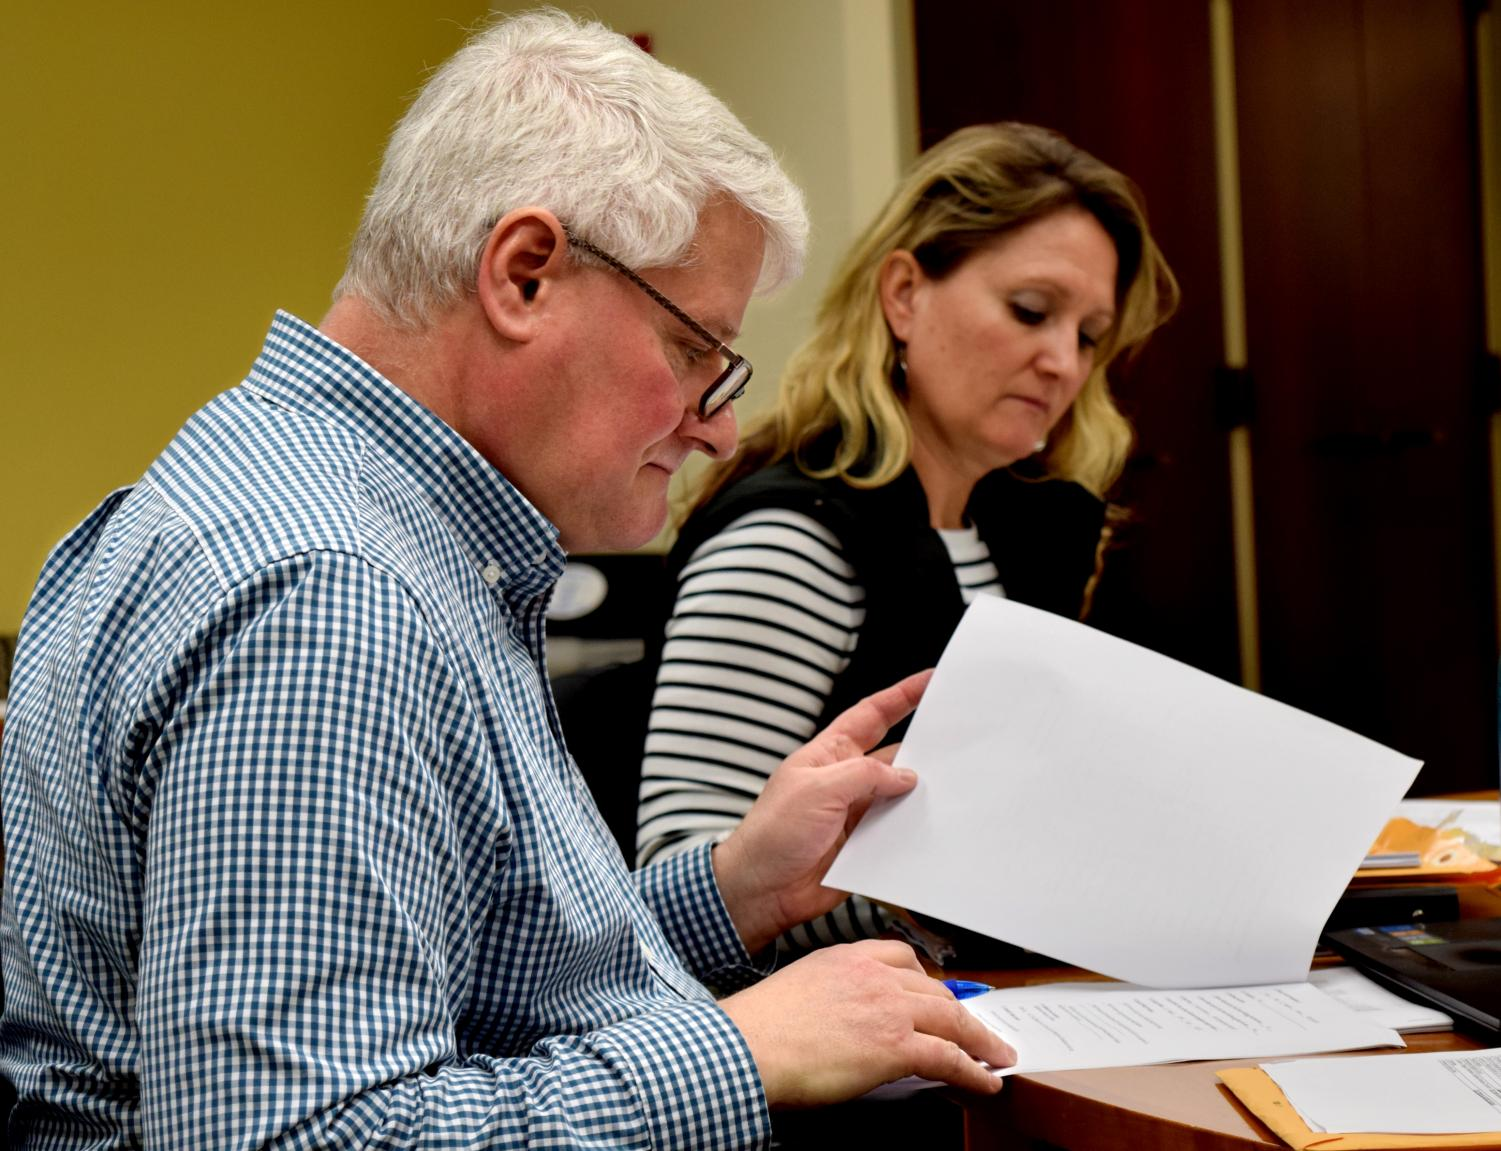 CAA vice chair Richard Wilkinson, a family and consumer sciences professor, sits with CAA chair Stacey Ruholl, a kinesiology and sports studies professor. They are looking through family and consumer sciences course proposals, all of which were passed unanimously at the Council on Academic Affairs' meeting Thursday.